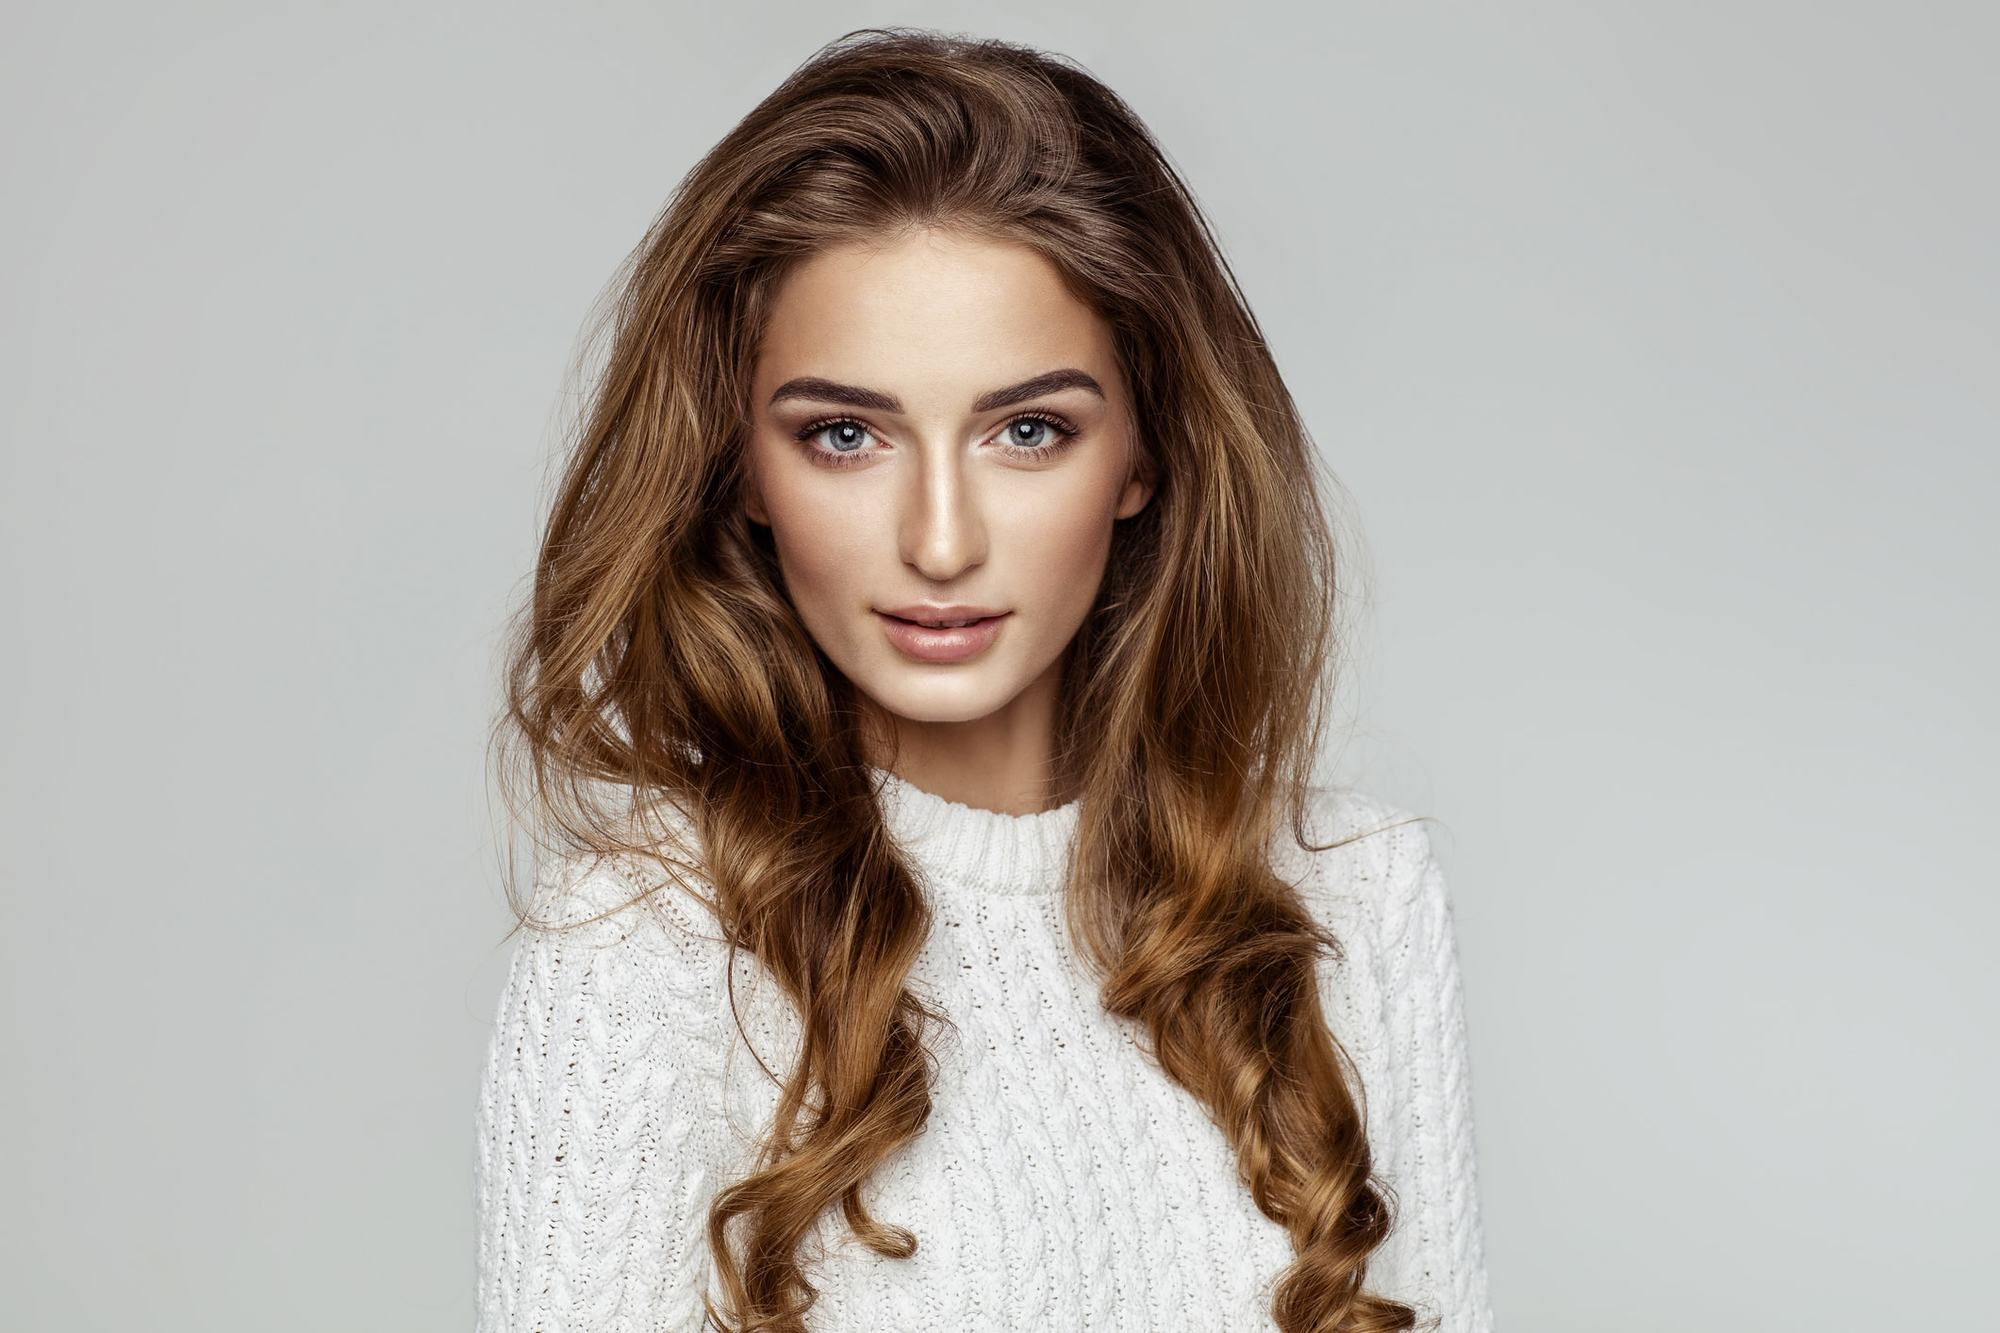 Honey brown hair 20 striking shades perfect for the season honey brown hair teased golden hue pmusecretfo Image collections